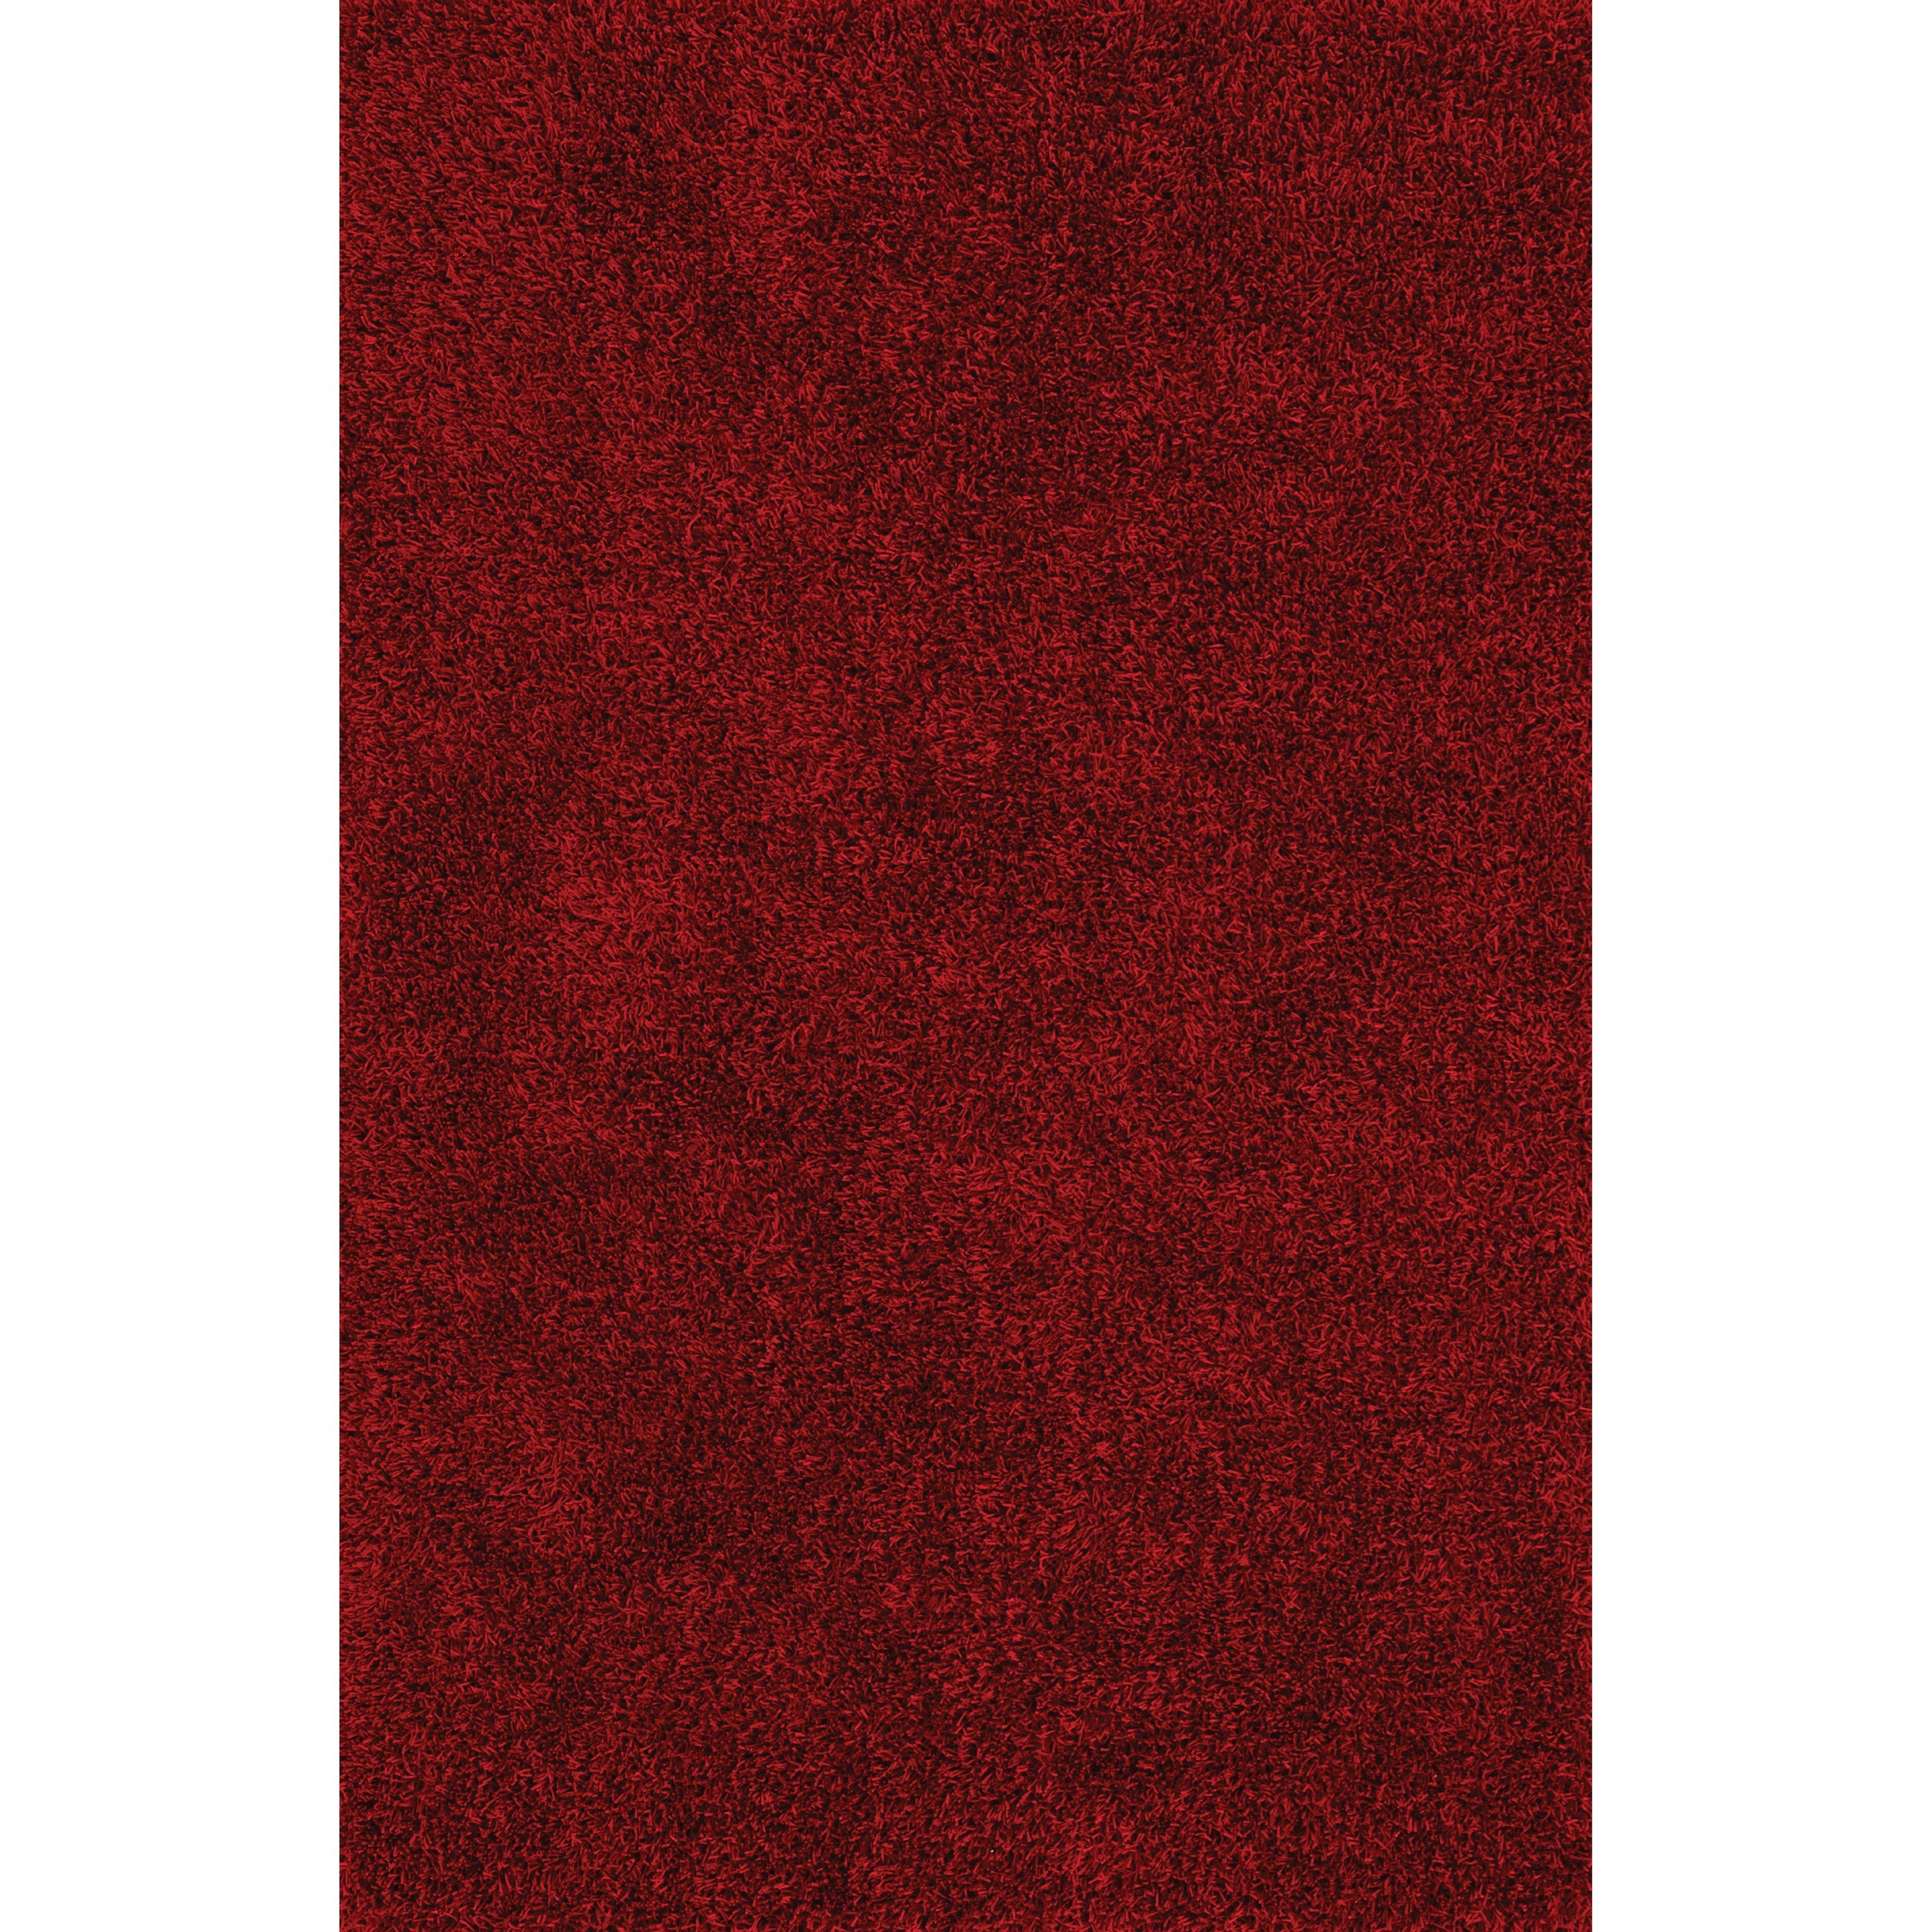 "Dalyn Illusions Red 5'X7'6"" Rug - Item Number: IL69RD5X8"